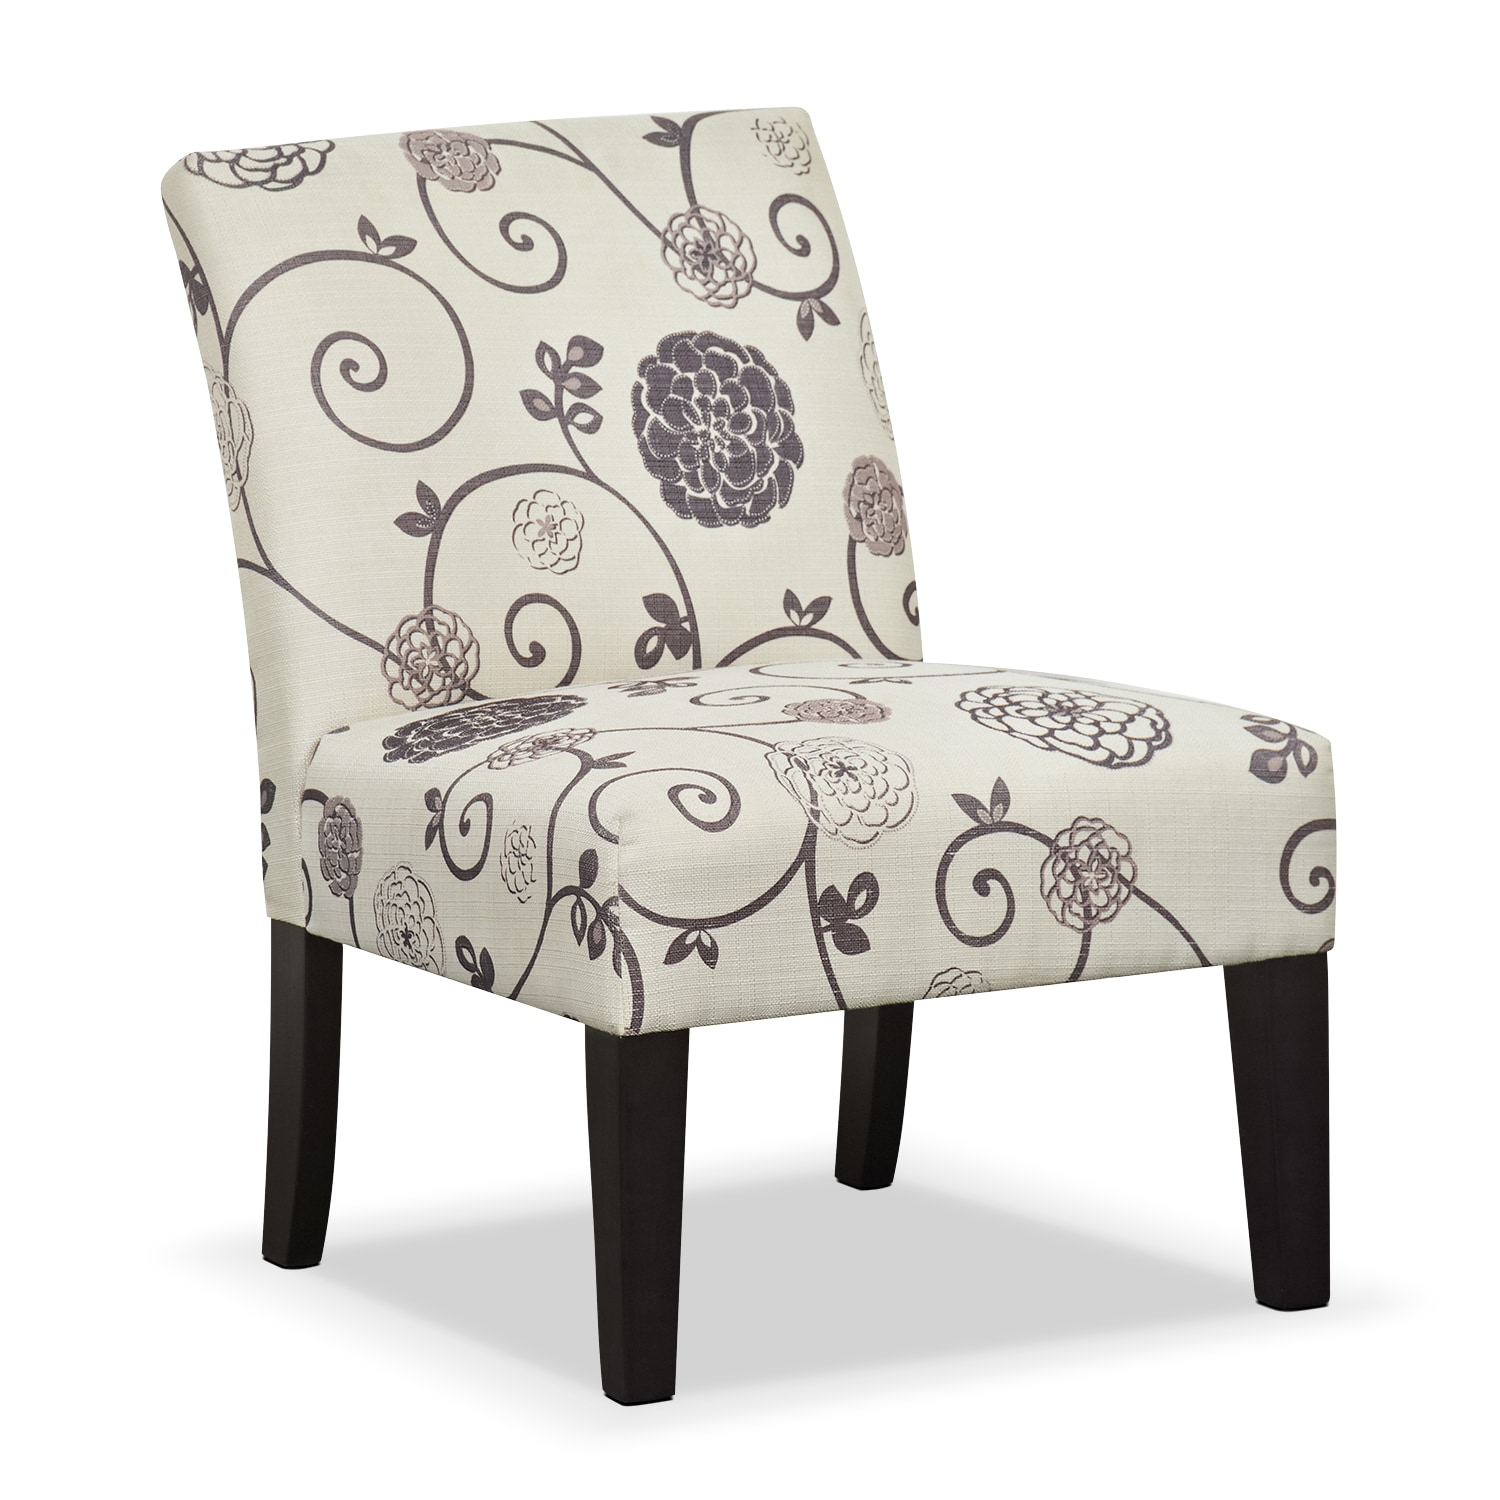 Floral Chairs Wylie Upholstered Side Chair Floral Value City Furniture